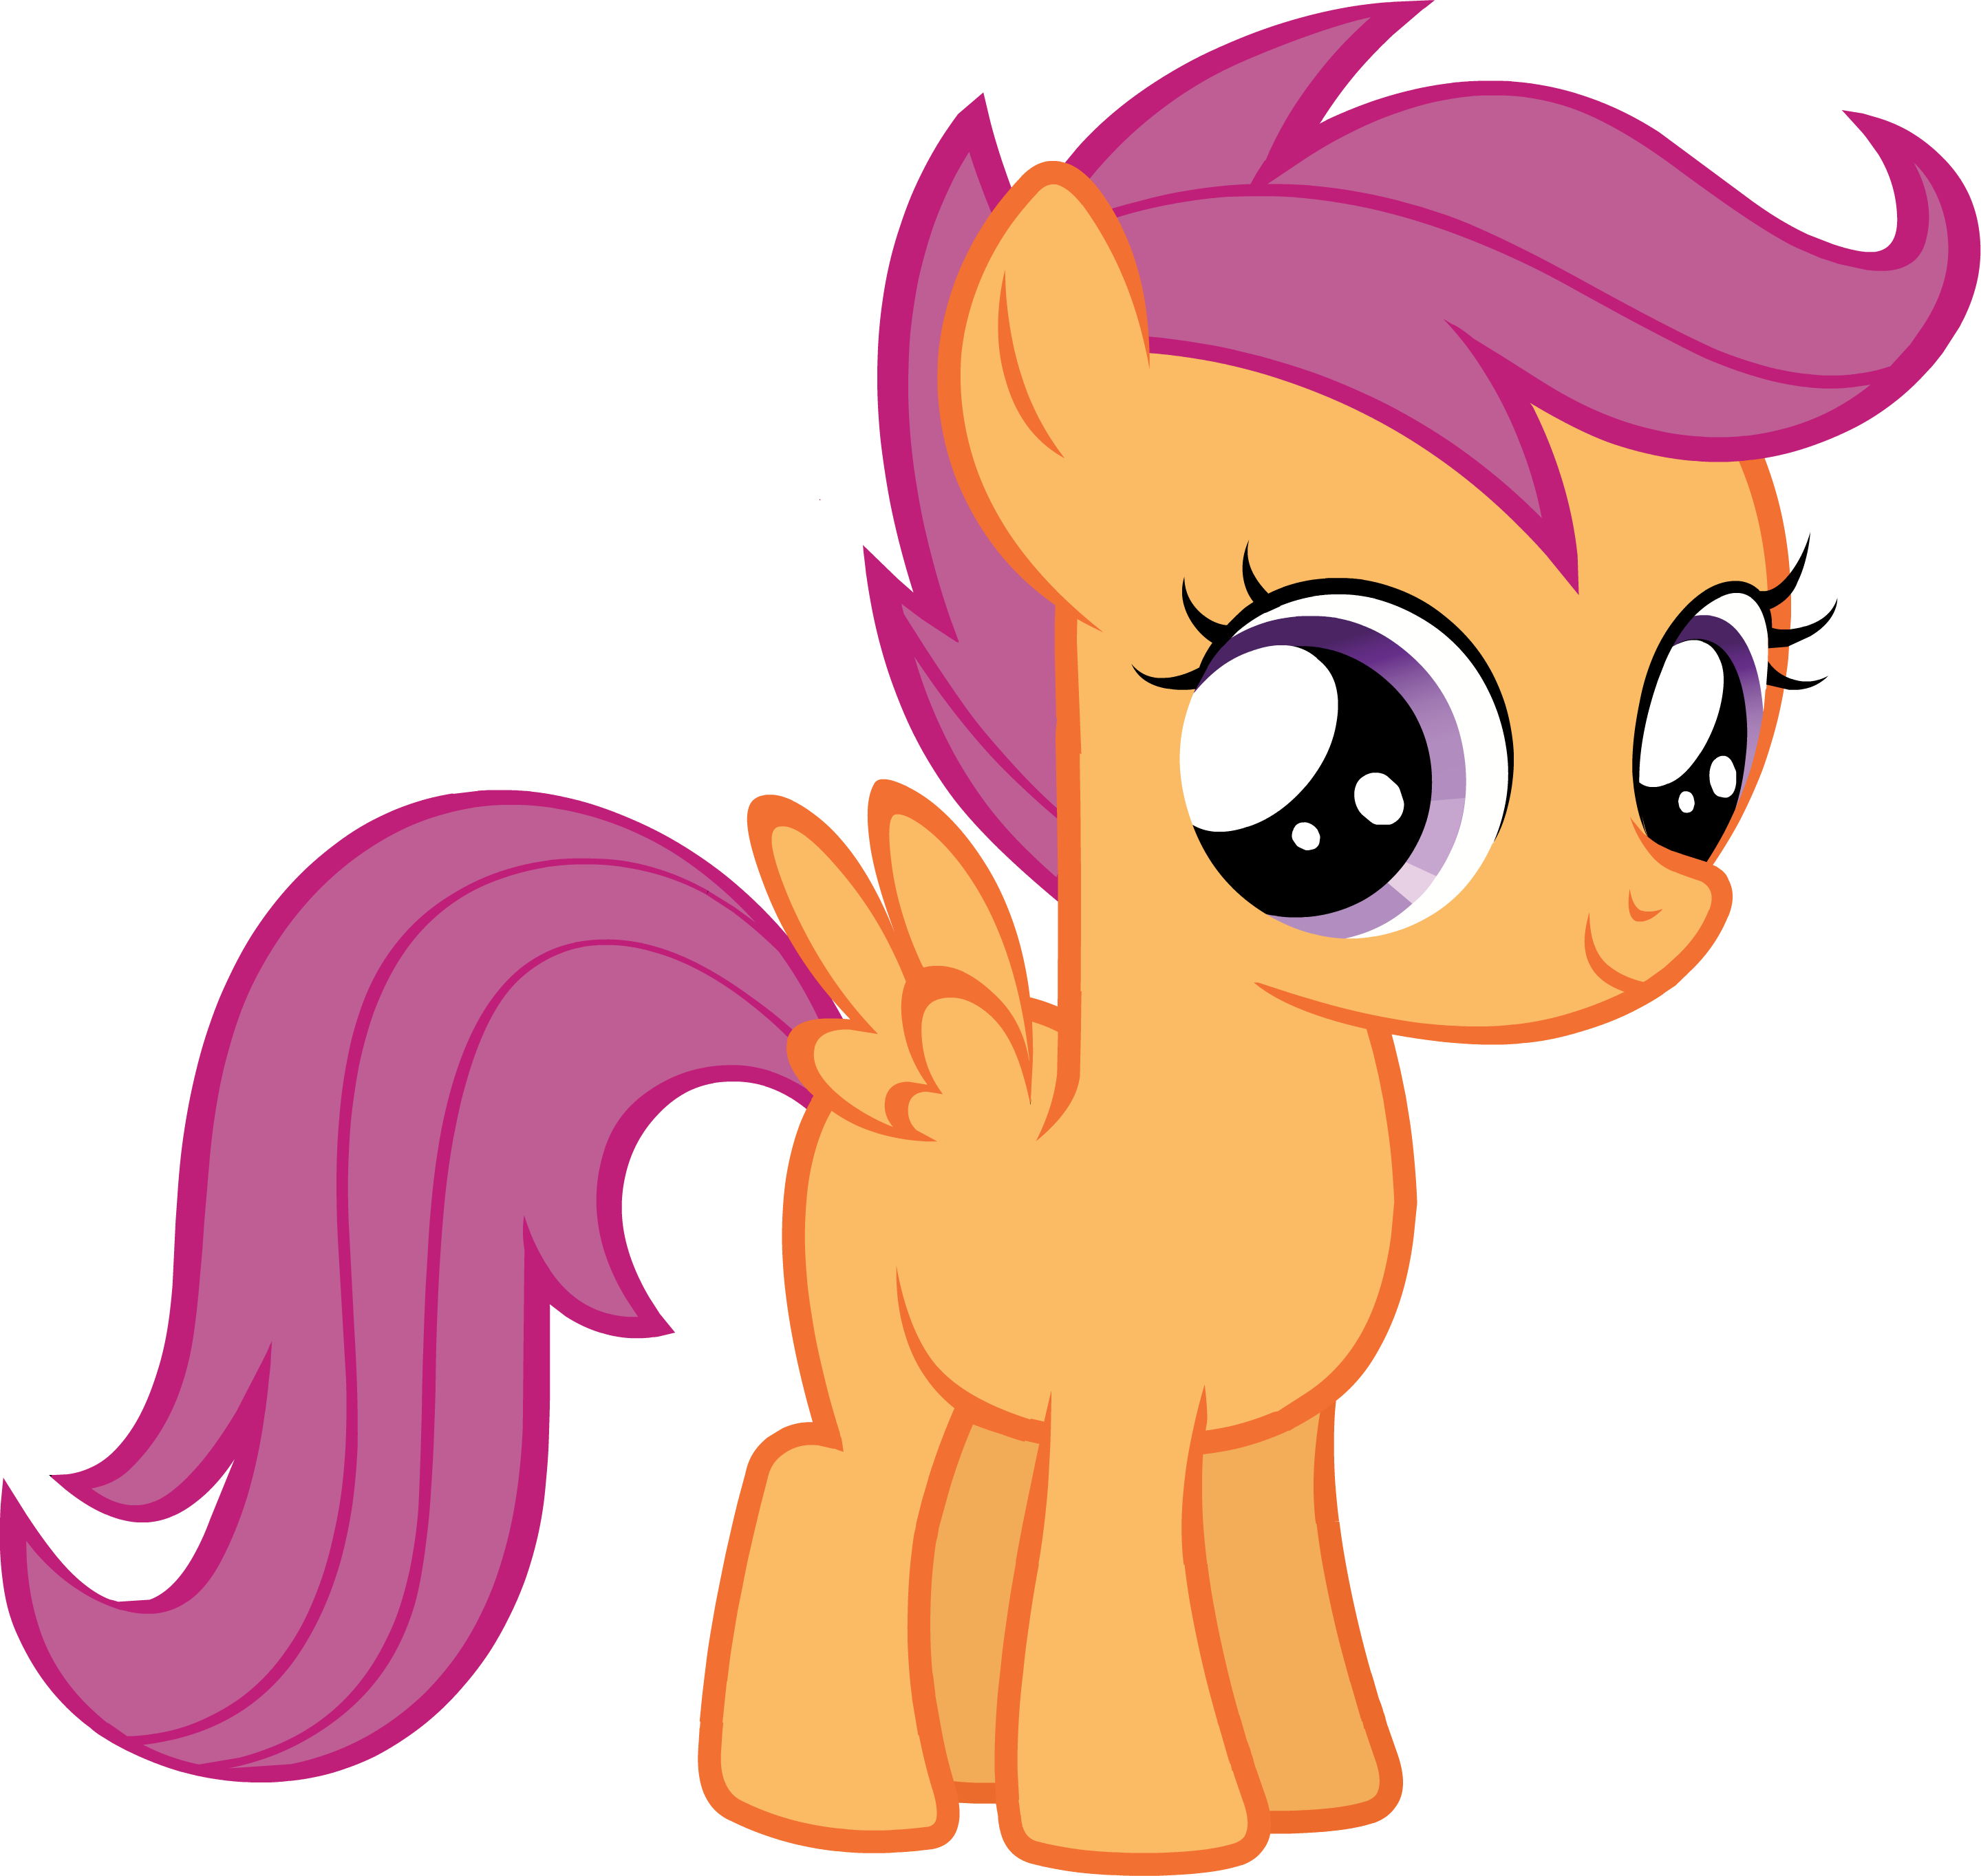 ... CastleCreator Scootaloo.png - My Little Pony Friendship is Magic Wiki